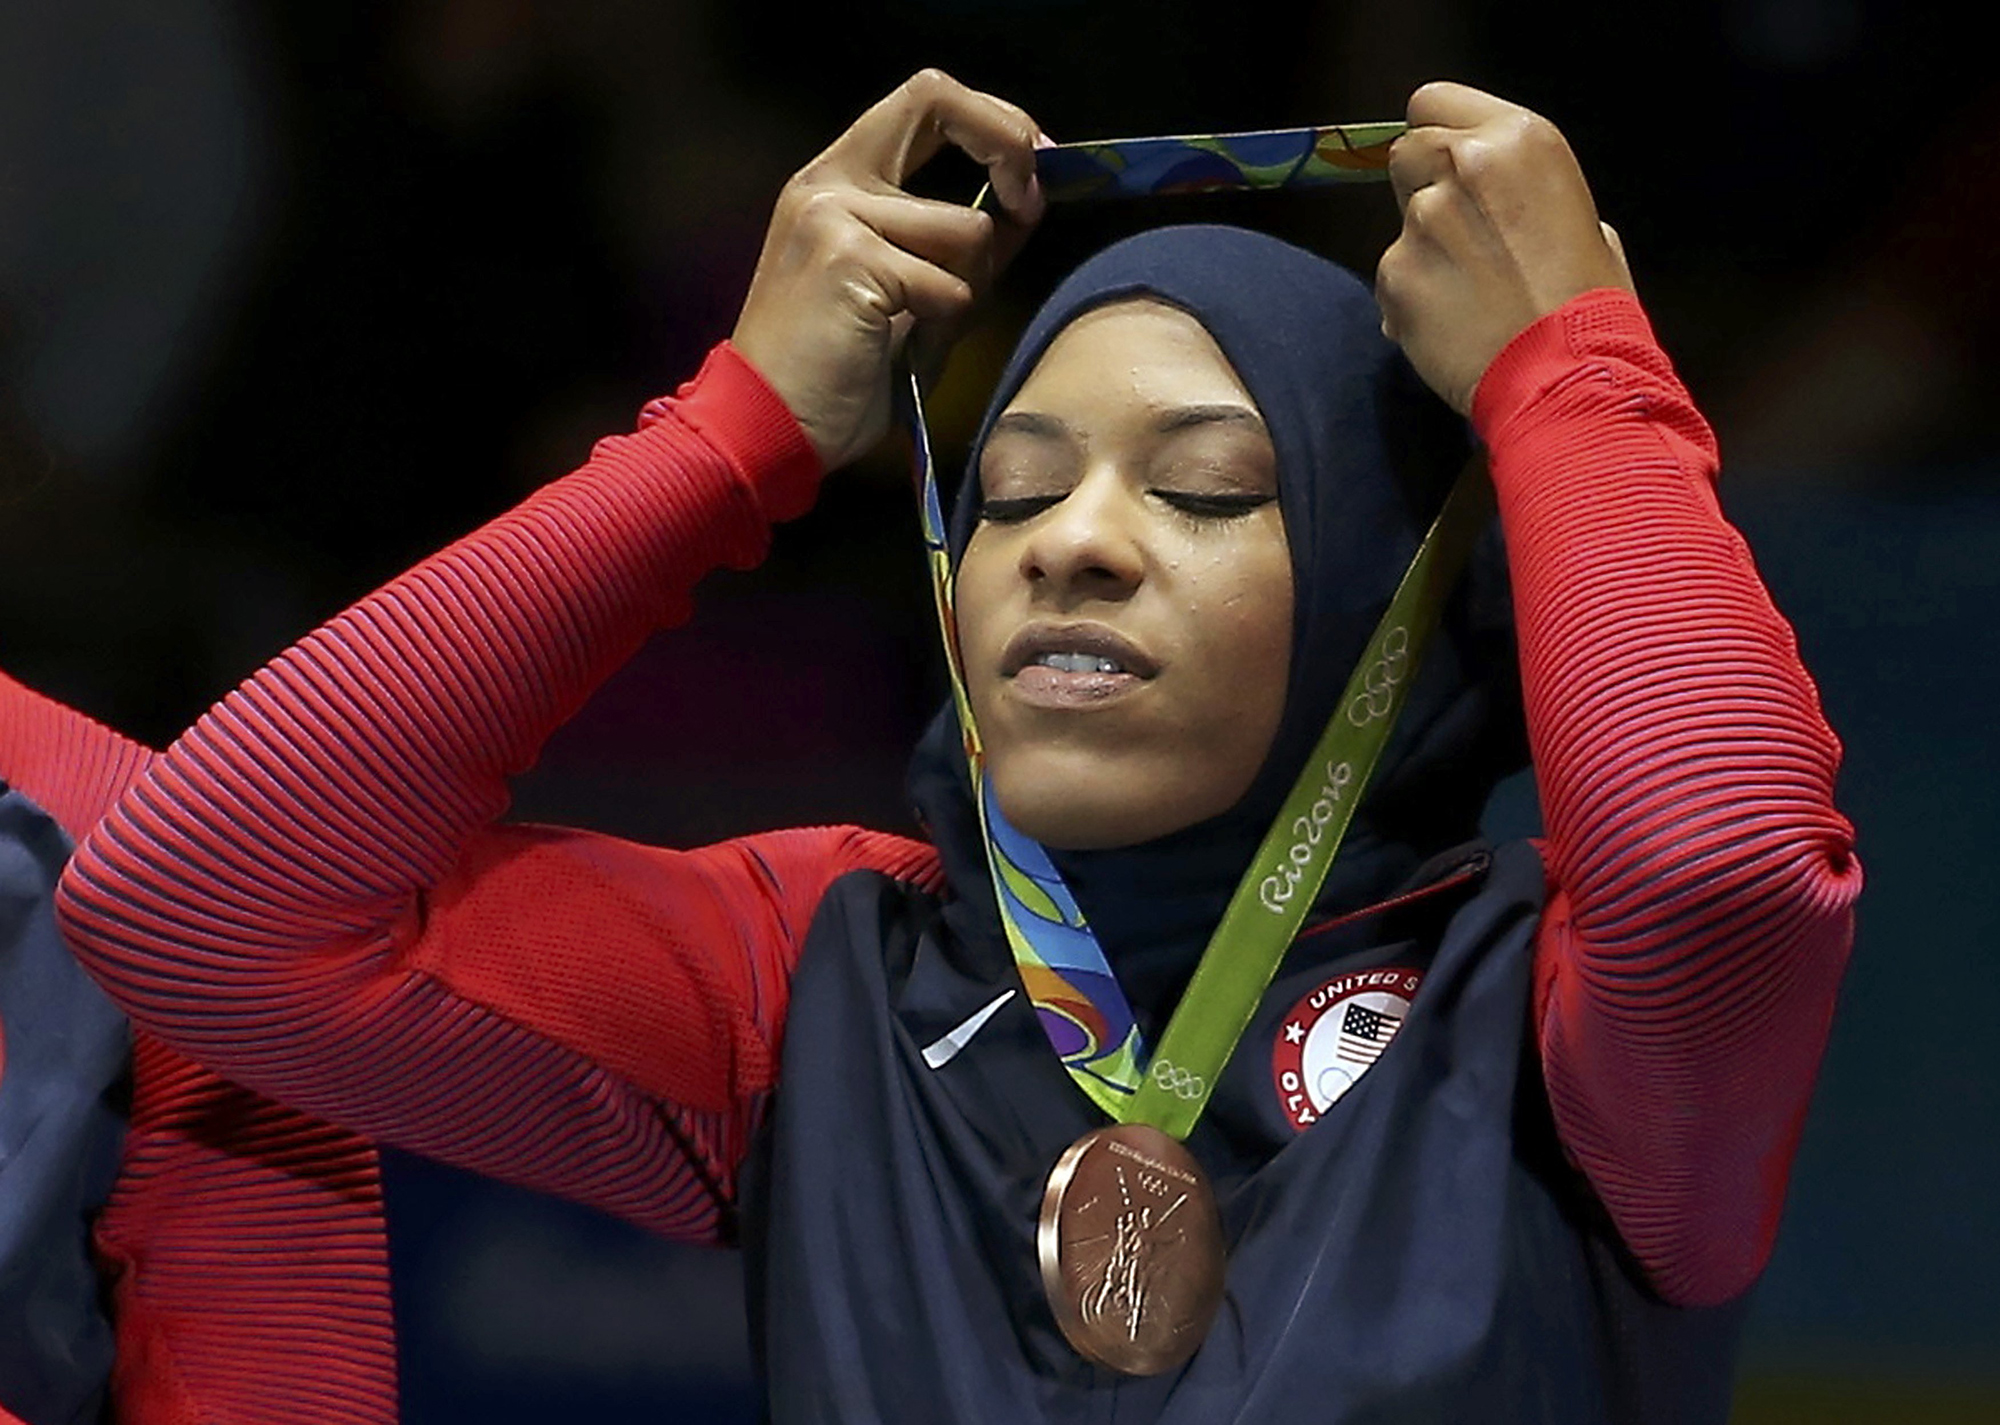 Ibtihaj Muhammad (USA) of USA celebrates winning the bronze medal.